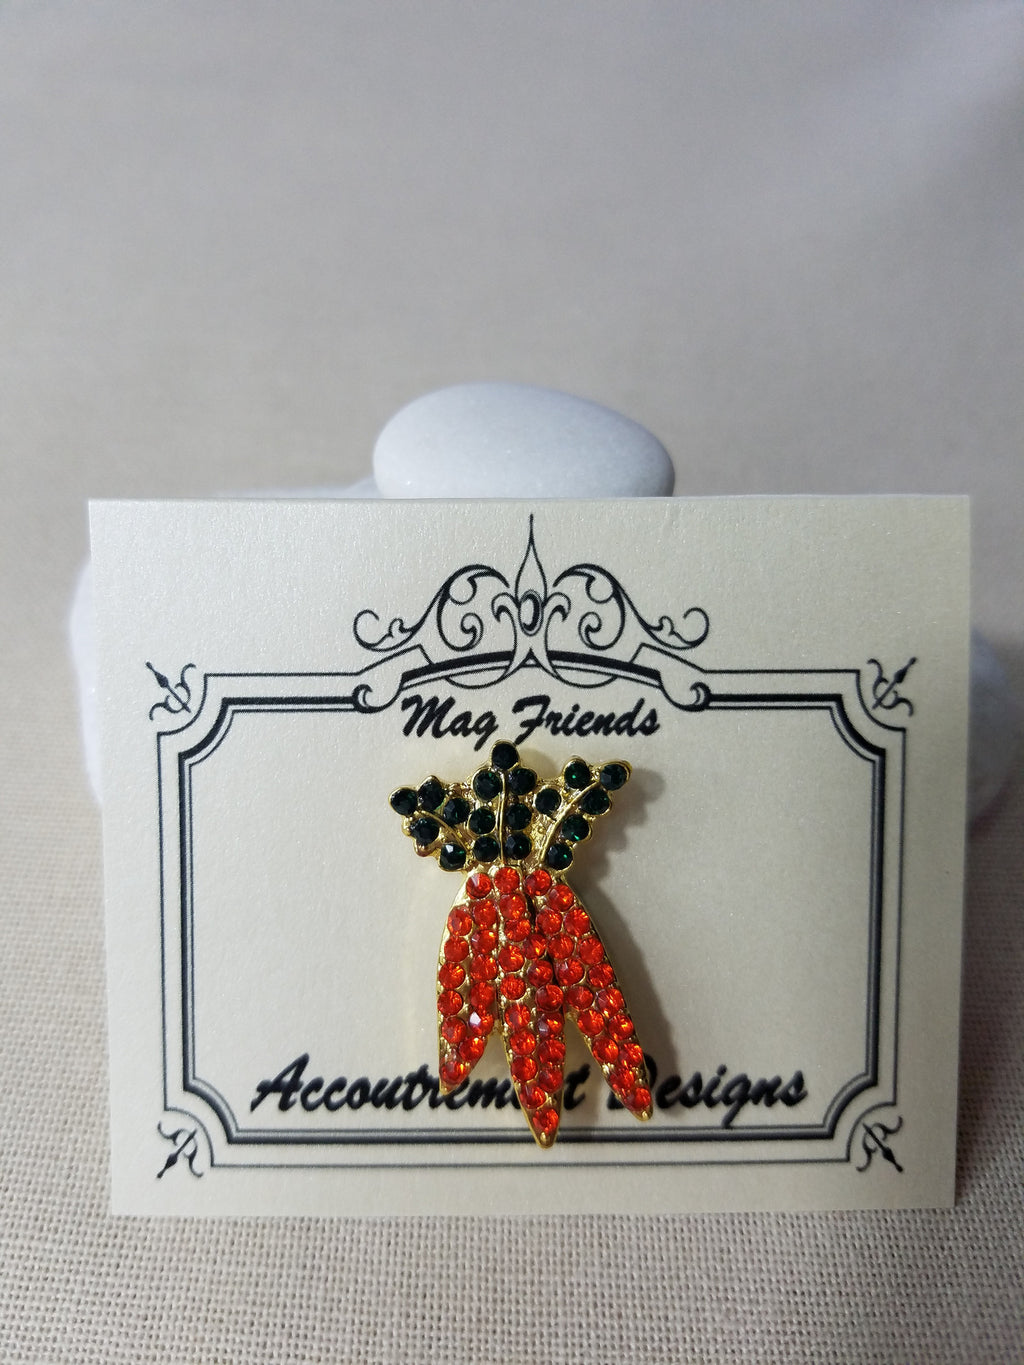 Glamorous ~ Carrot ~ Accoutrement Magnet